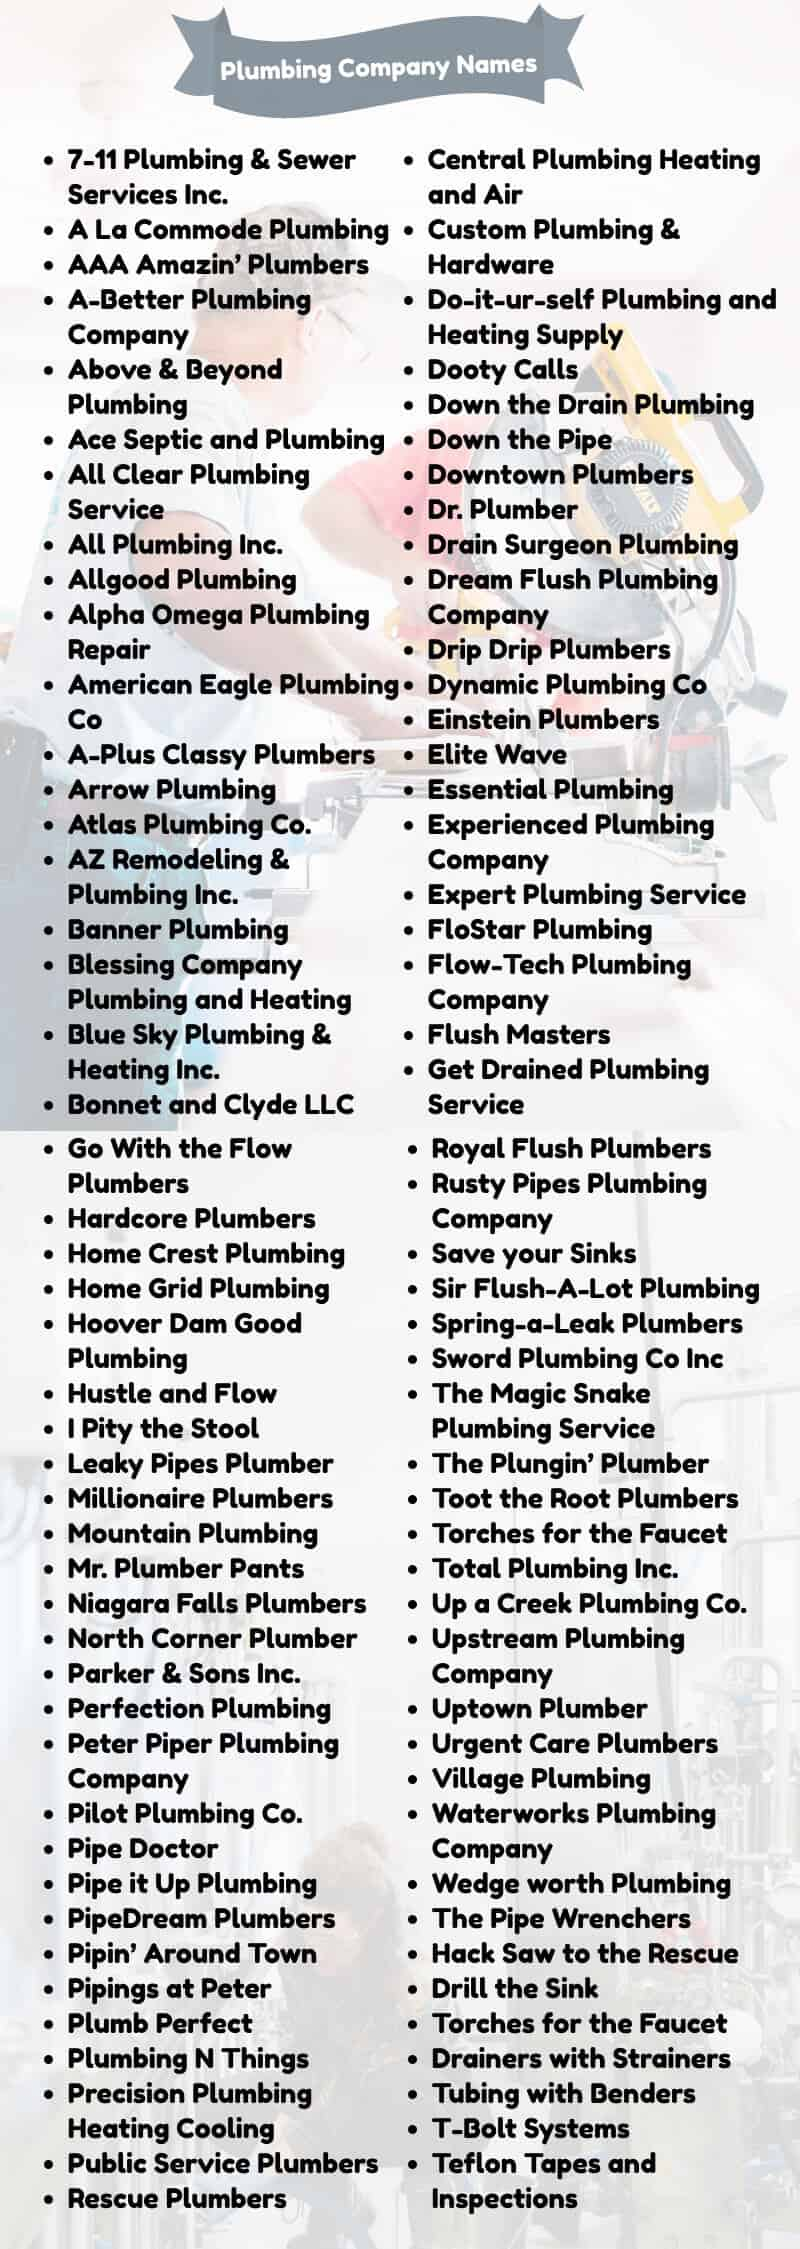 These are Catchy Plumbing Company Names